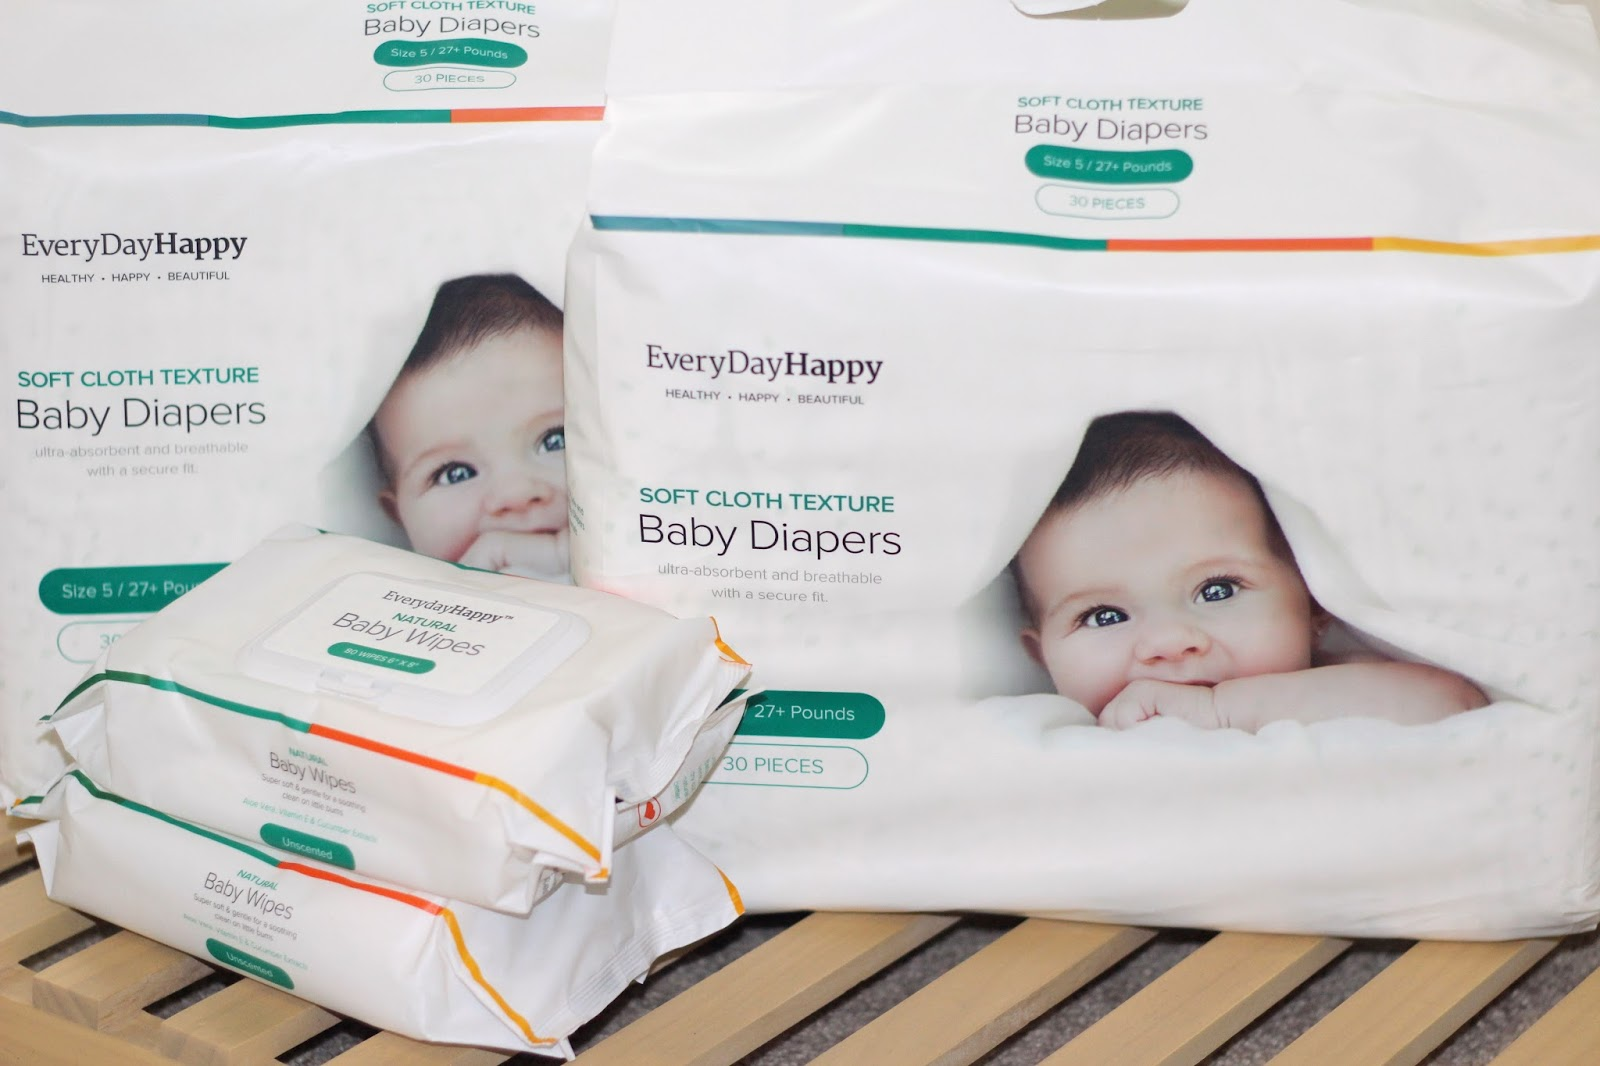 EverydayHappy Diapers